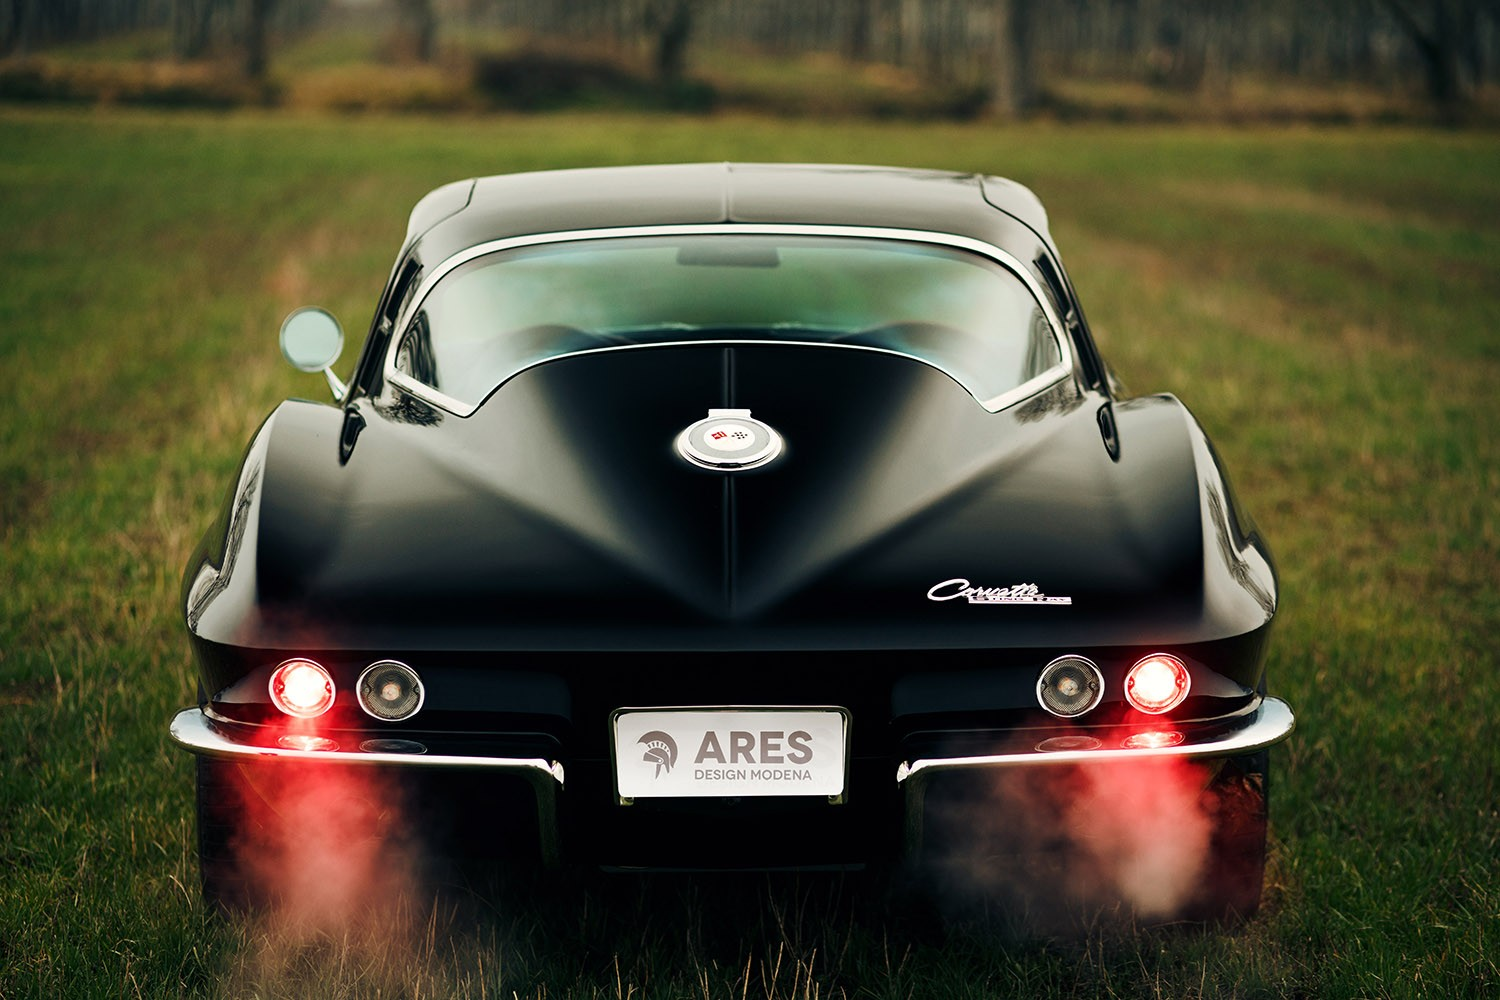 Ares Corvette Stingray Joins Four Other Unique Cars In